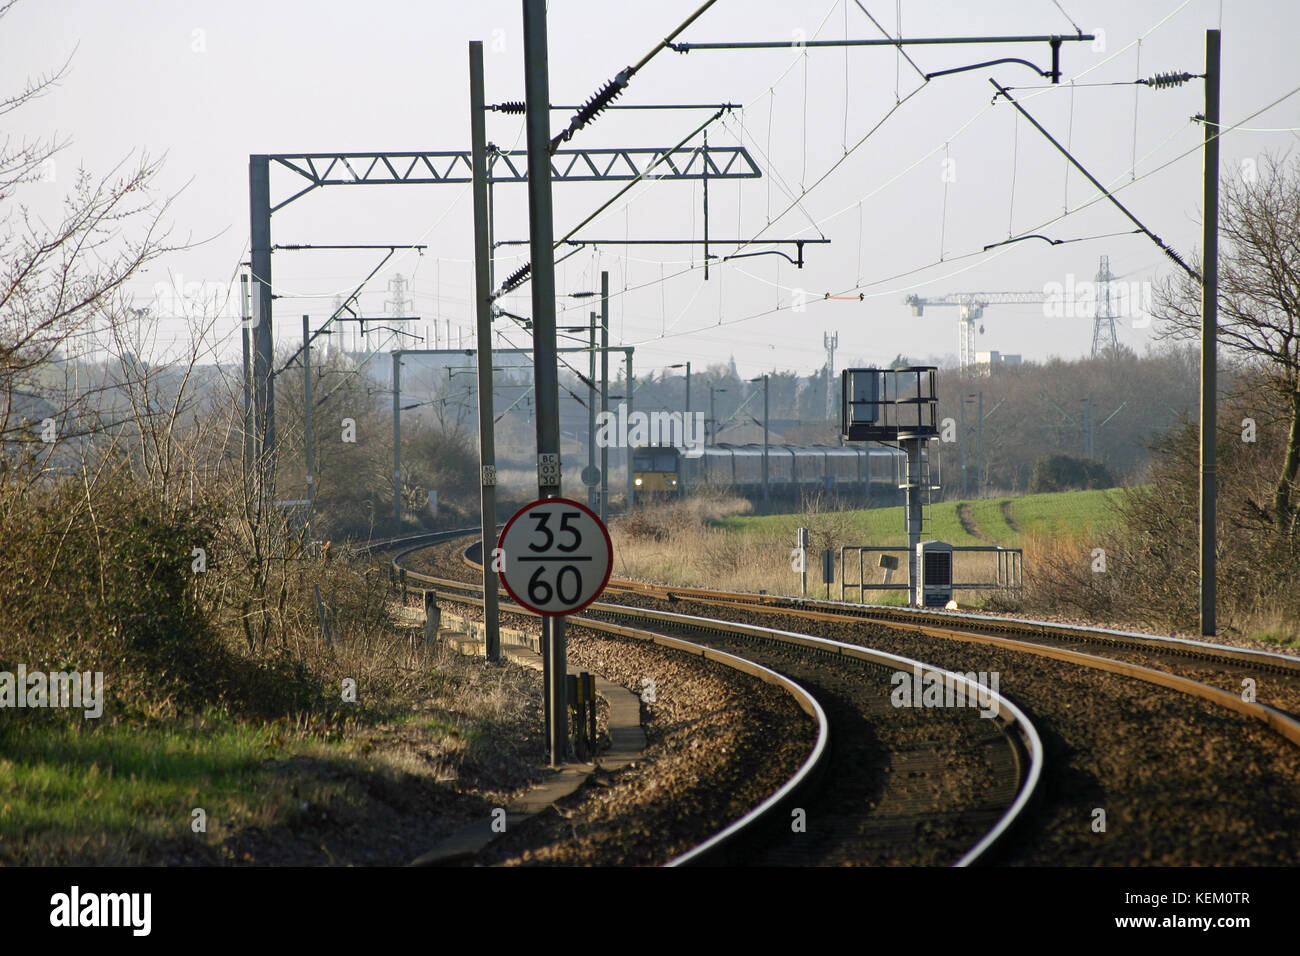 Curved local railway line with electric overhead cables and train in the distance. Background of trees, hedges and - Stock Image